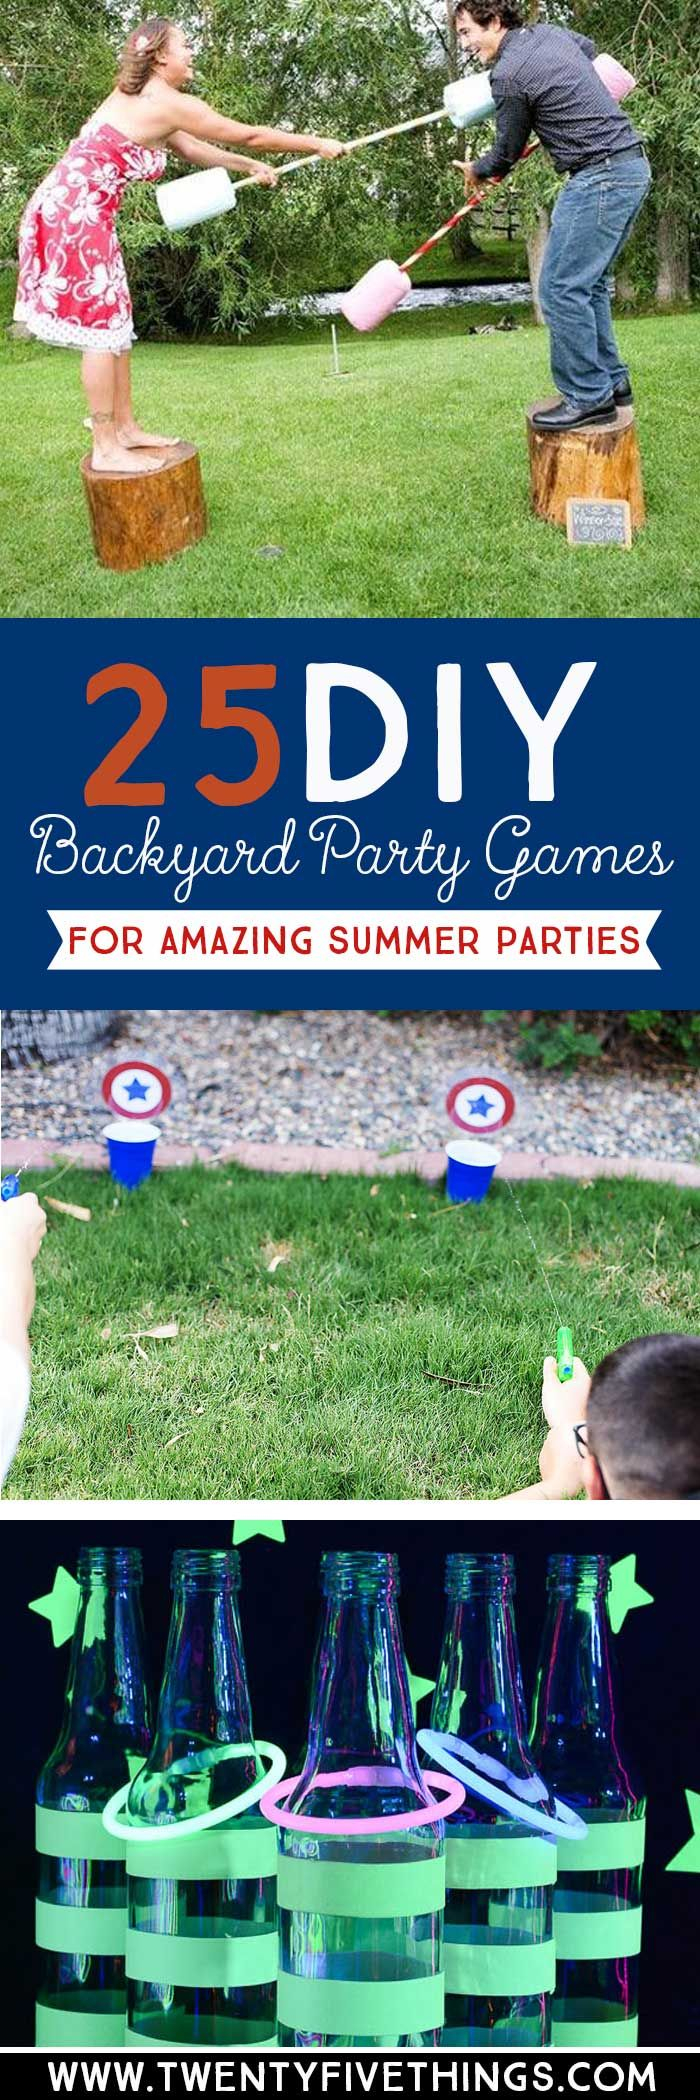 25 Diy Backyard Party Games For The Best Summer Party Ever Games intended for Diy Backyard Party Ideas